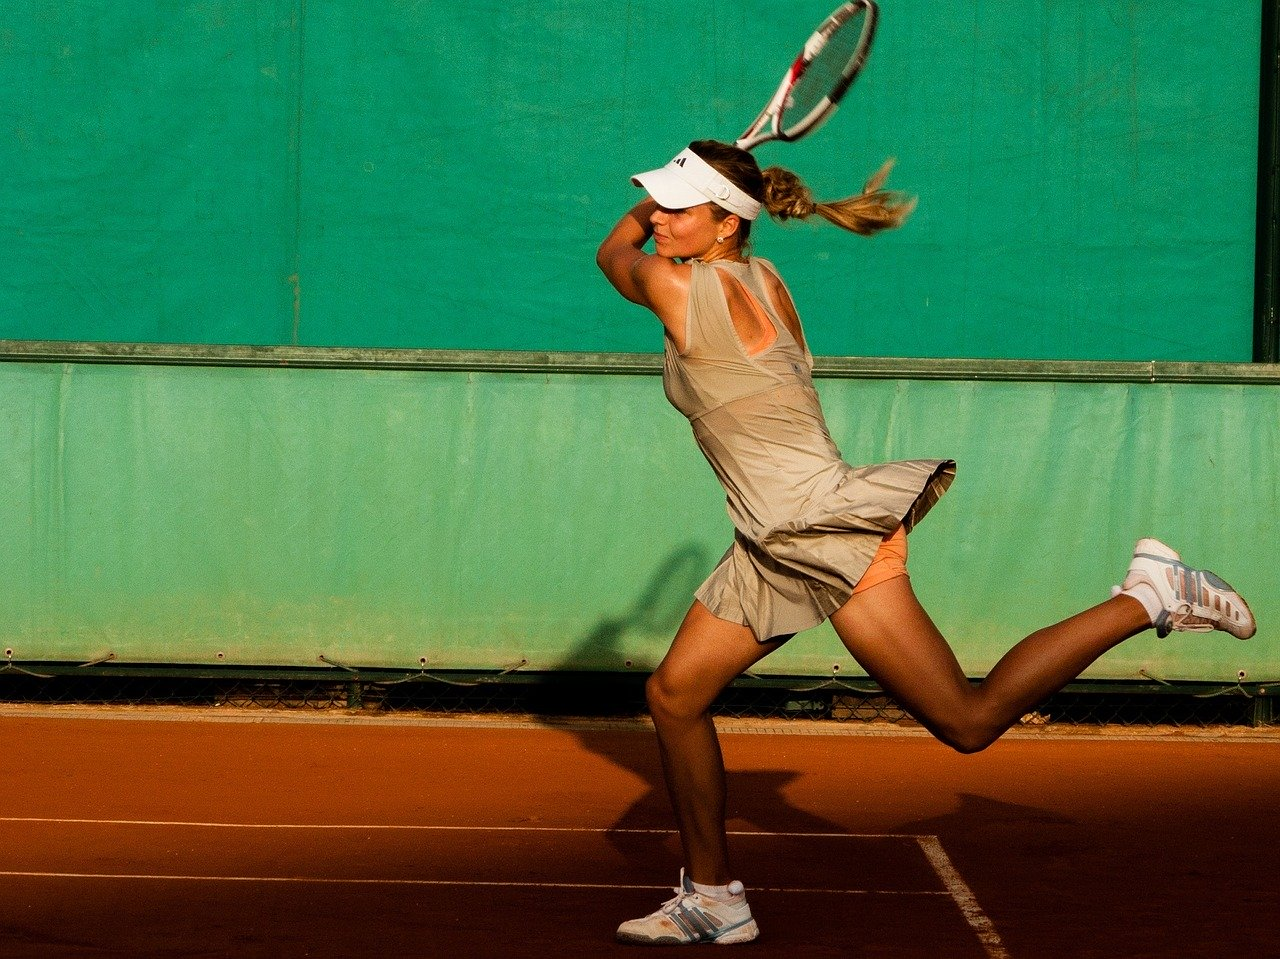 Female tennis player hitting backhand on red tennis clay court